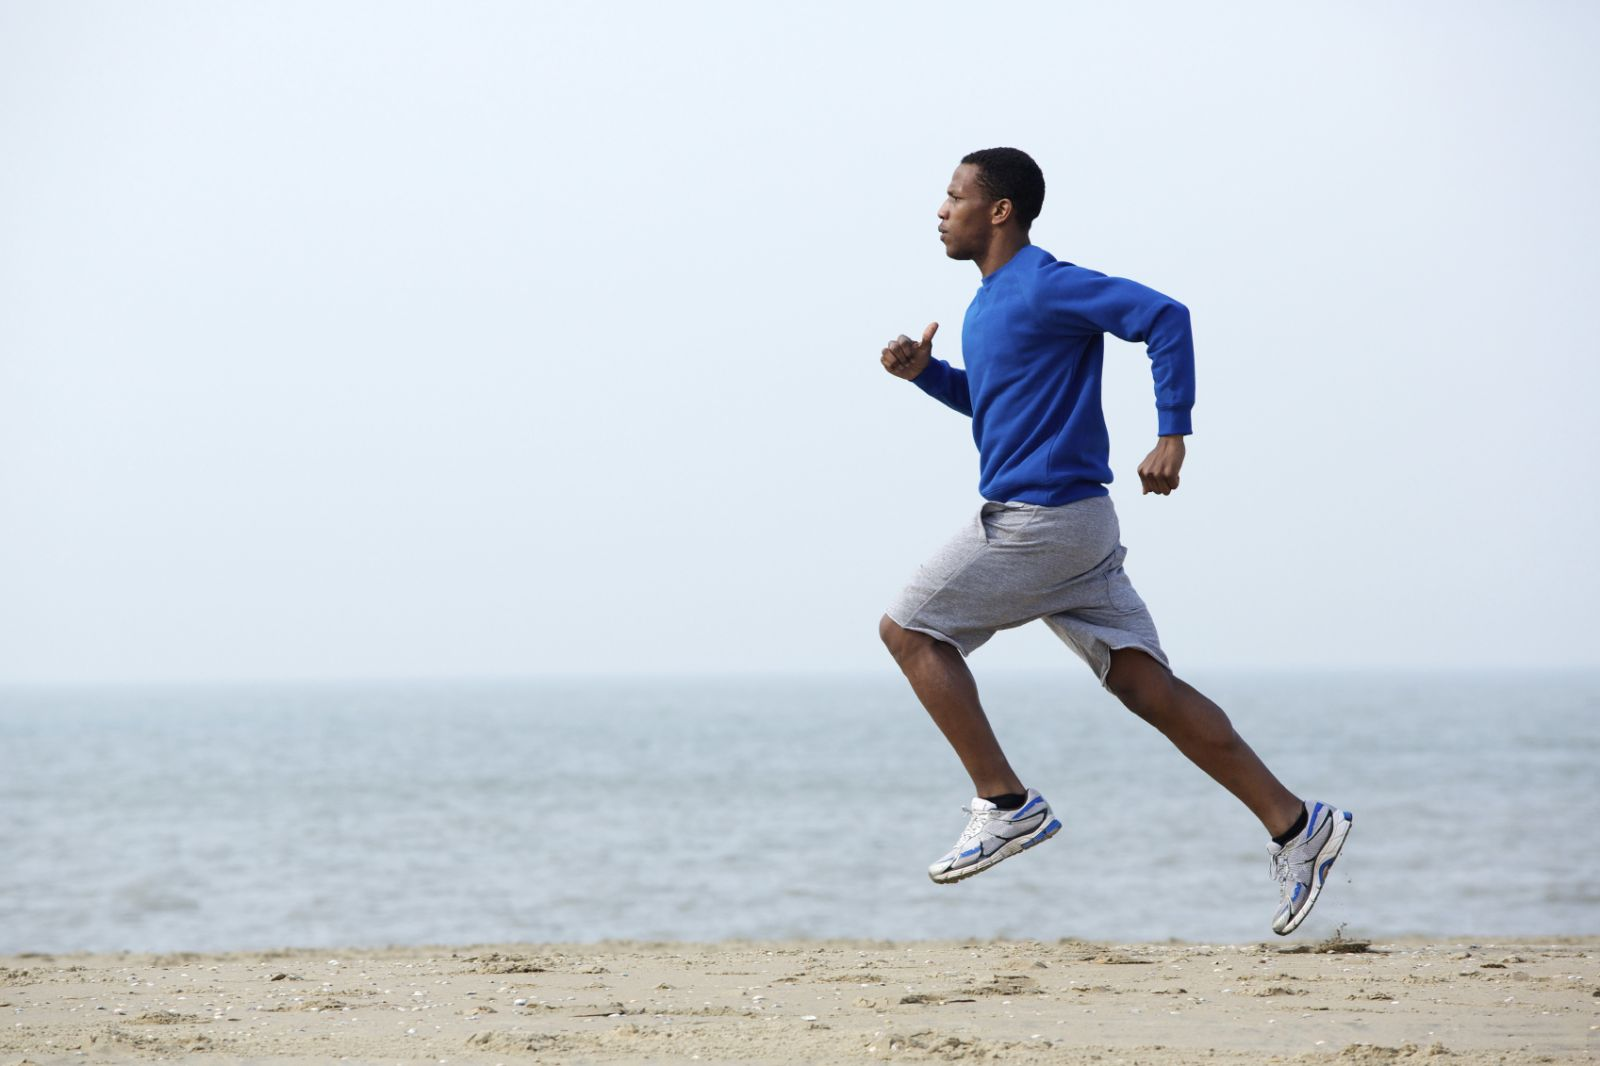 lewis run black single men Black men run inc is an independent running group focused on the mission to promote a healthy lifestyle among african american males through participation in recreational running.